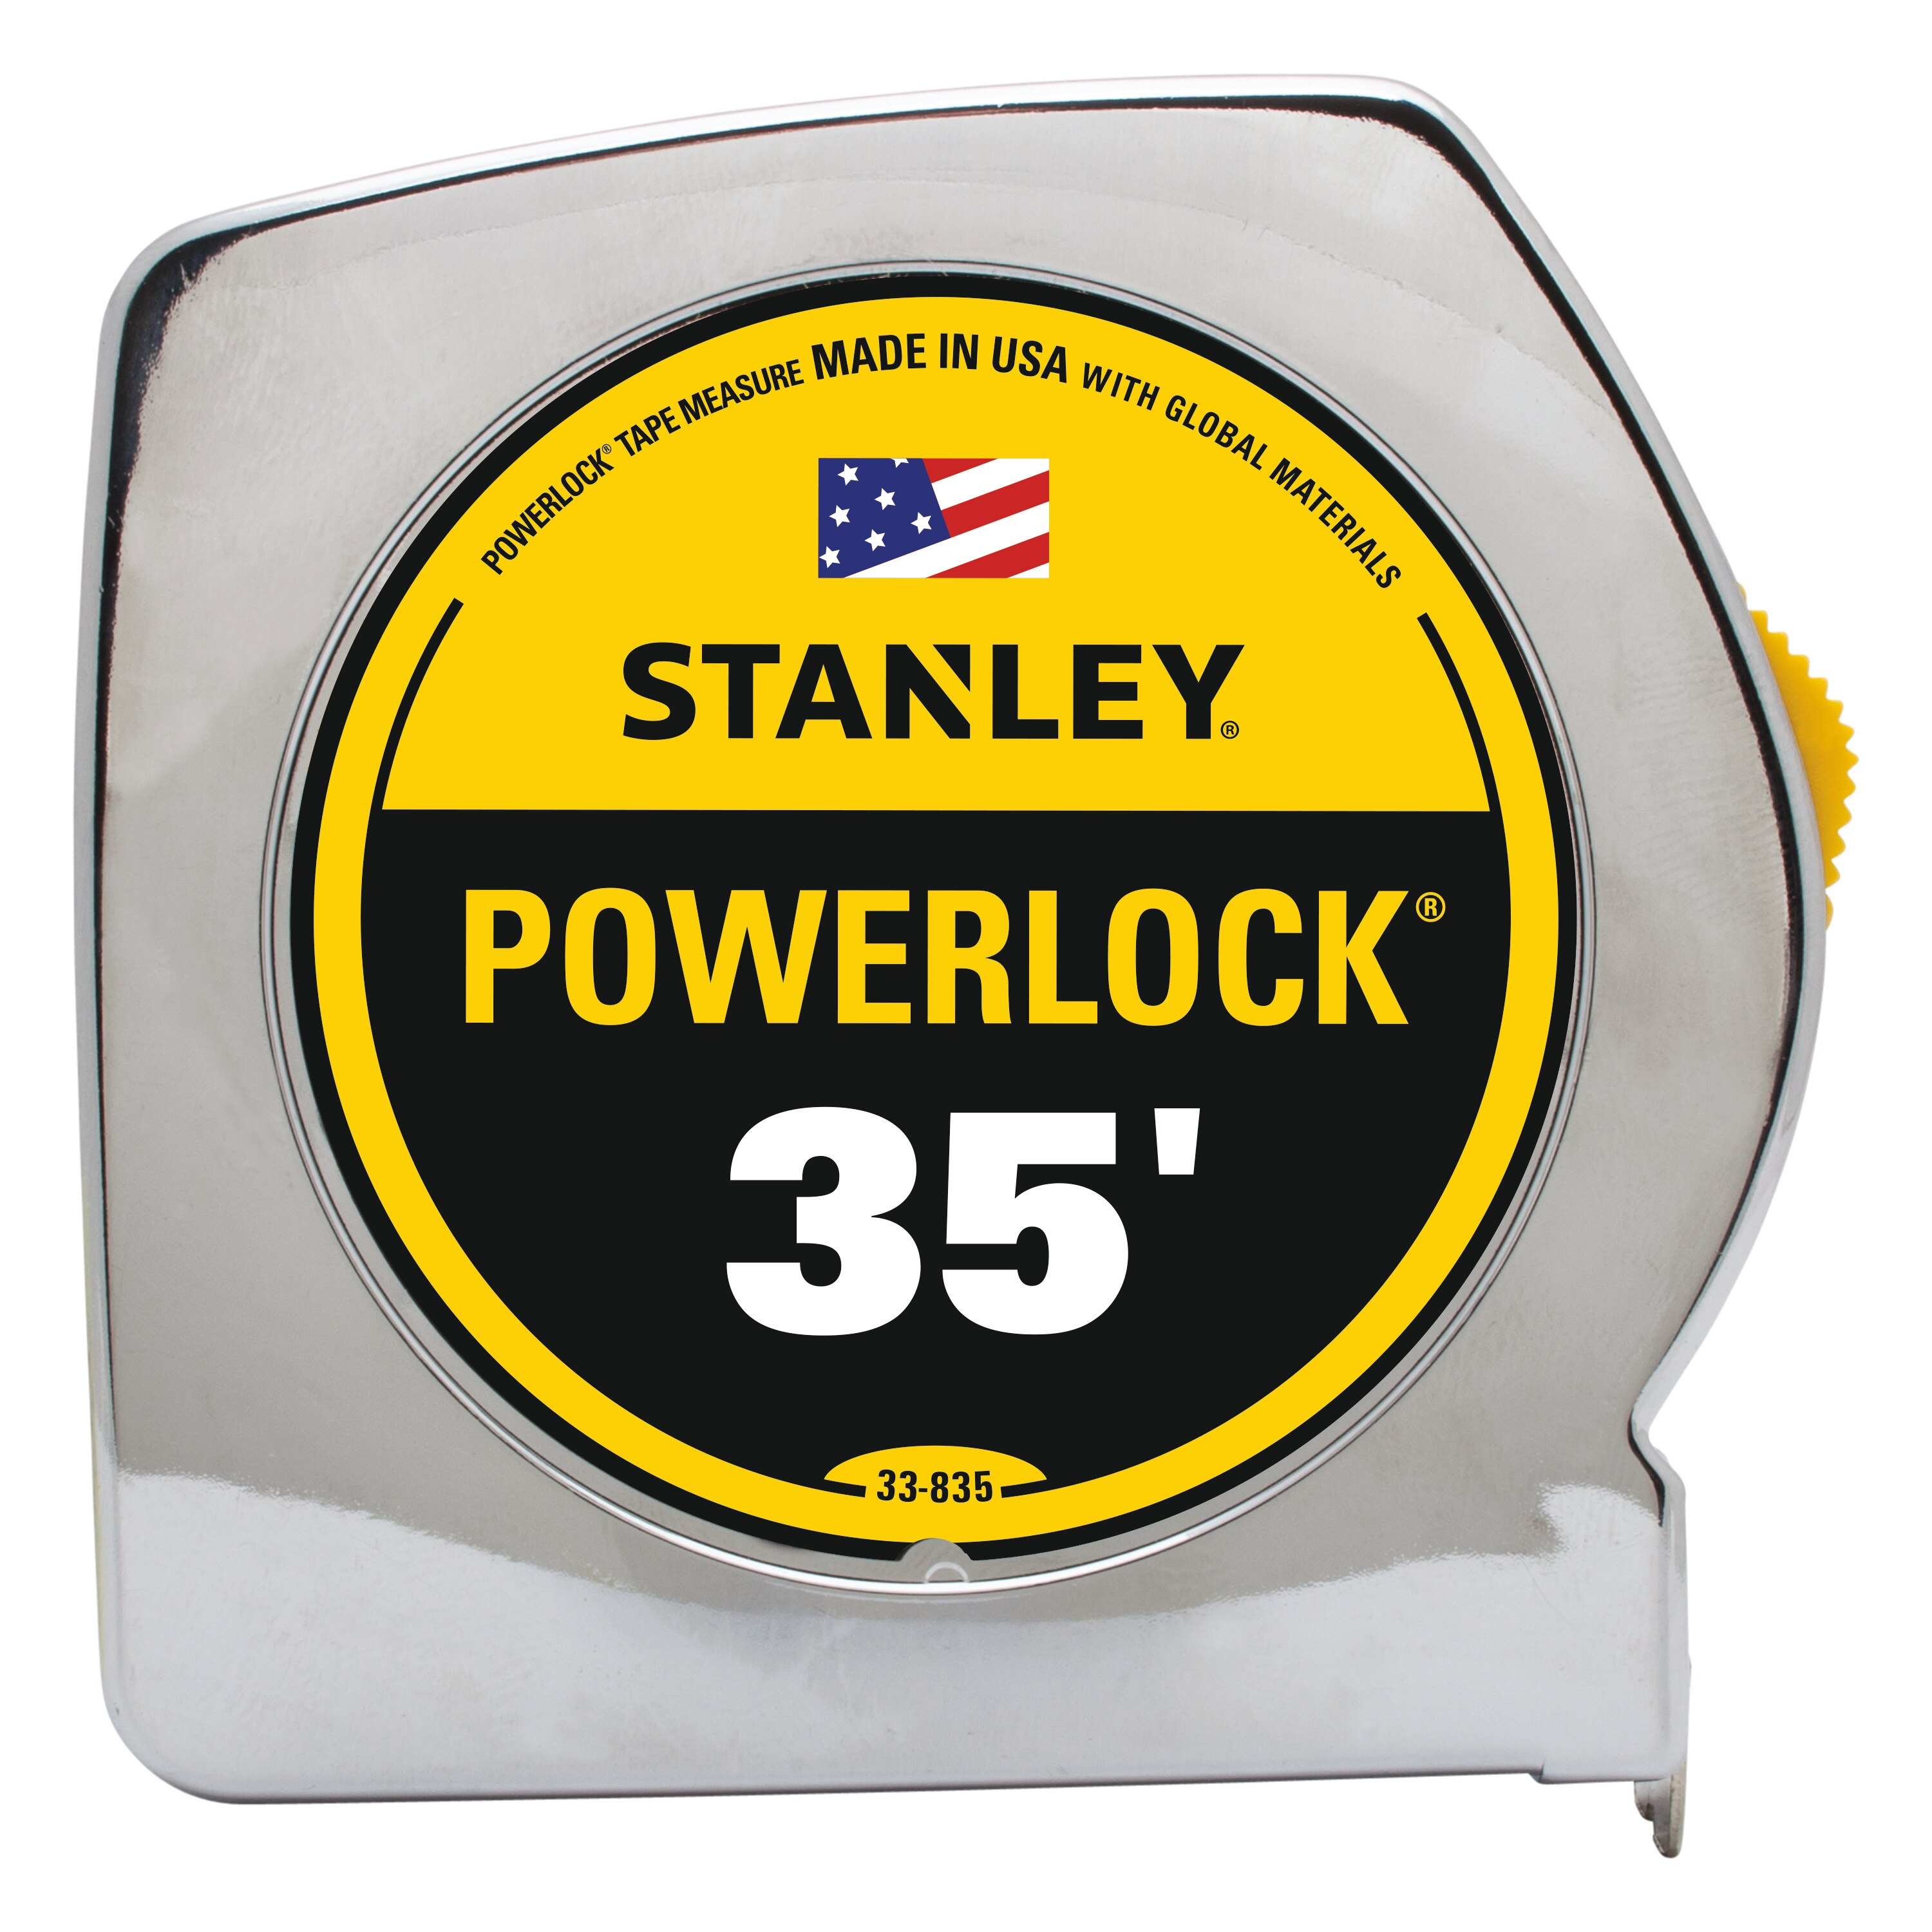 Stanley Tools - 35 ft PowerLock Classic Tape Measure - 33-835